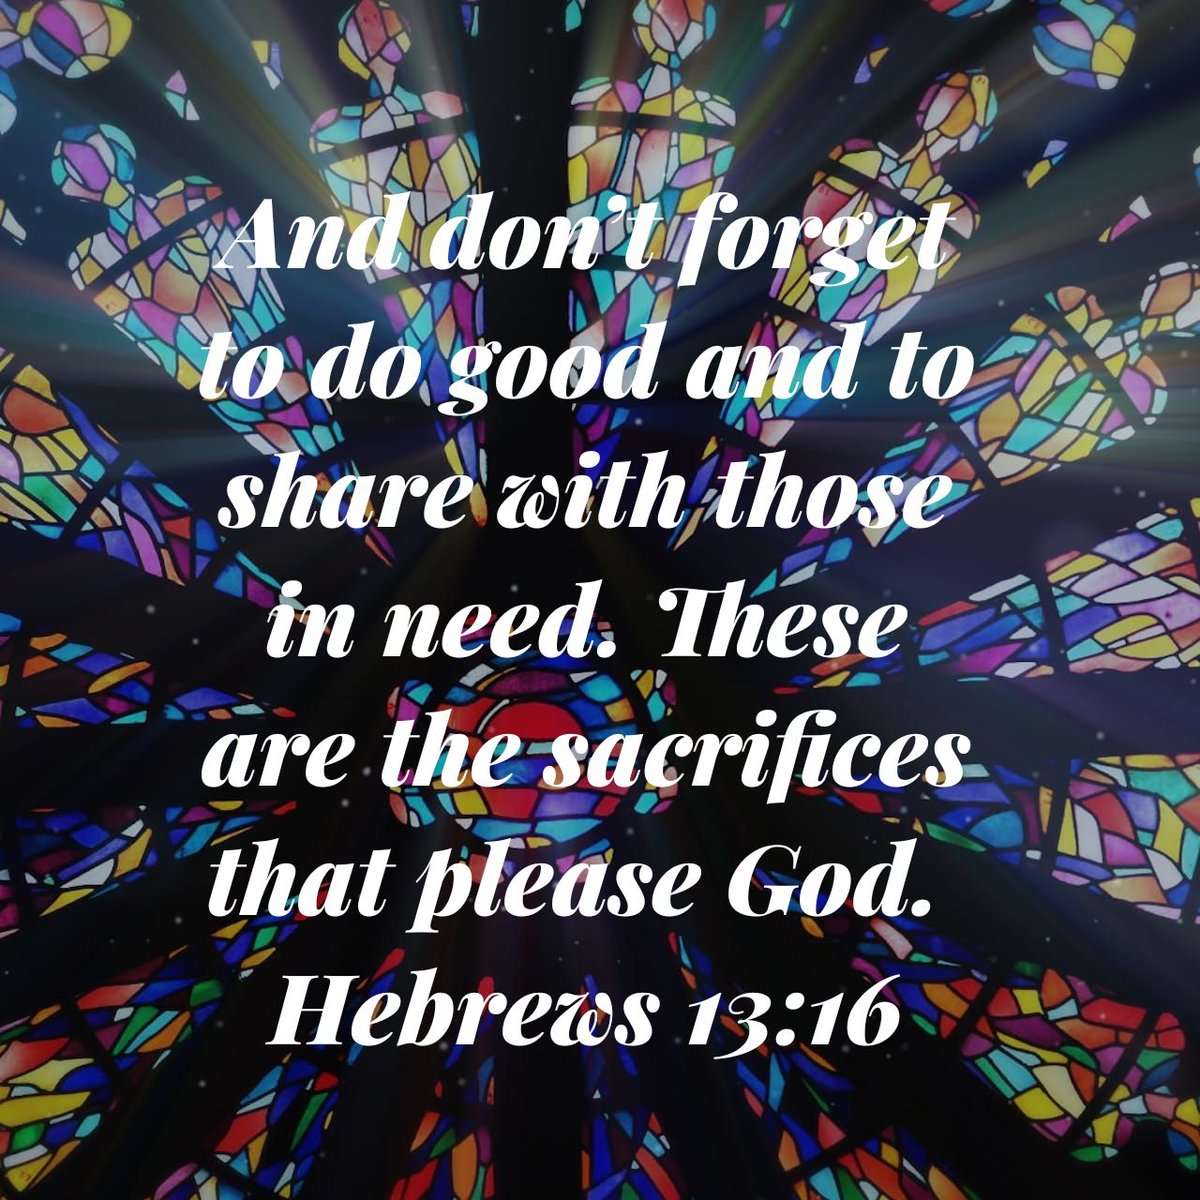 And don't forget to do good and to share with those in need. These are the sacrifices that please God. Hebrews 13:16 NLT  https://t.co/GhubI40rov https://t.co/9aCd4Q2rz2